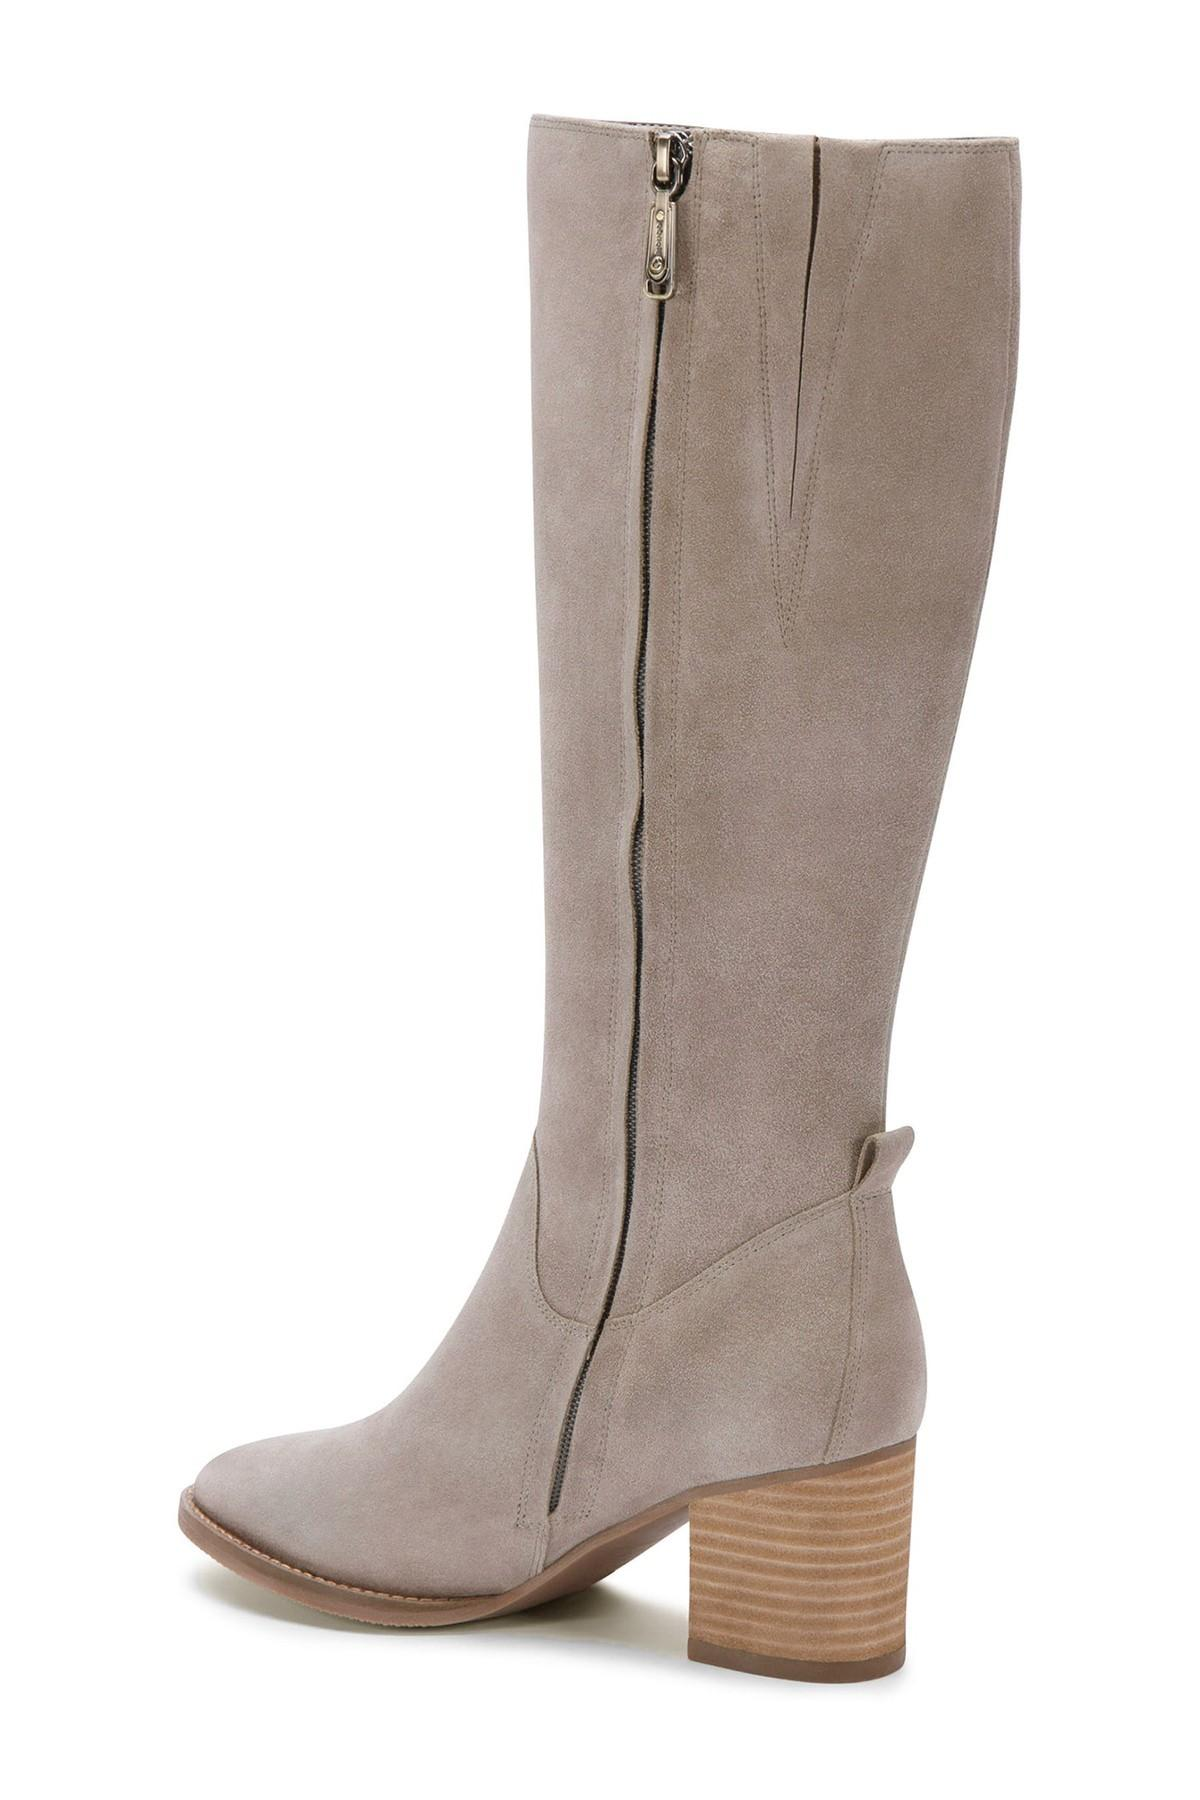 1bb3e820147 Lyst - Blondo Nicola Waterproof Suede Knee-high Boot in Gray